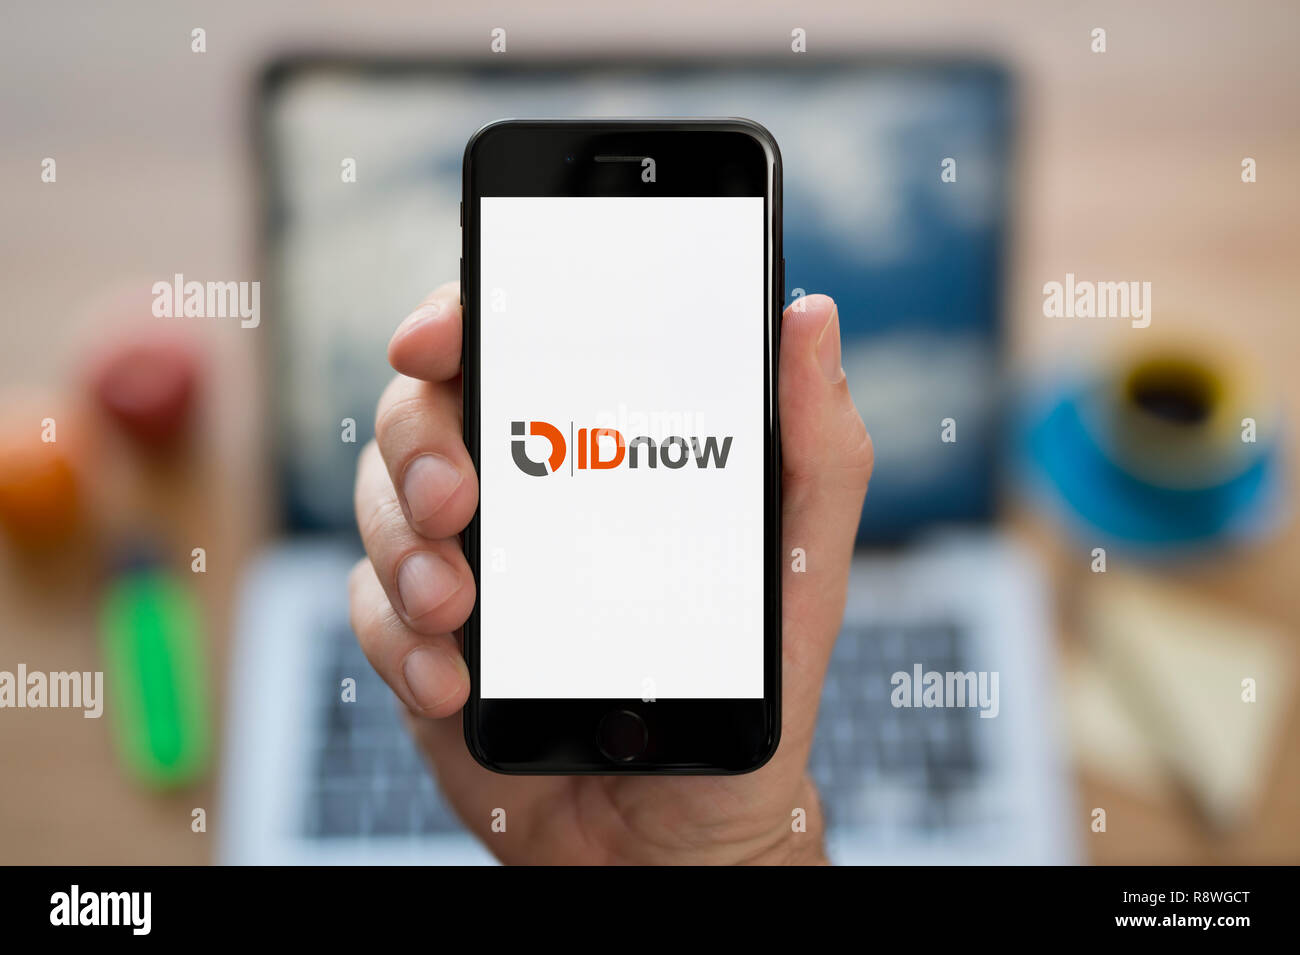 A man looks at his iPhone which displays the ID Now logo (Editorial use only). - Stock Image